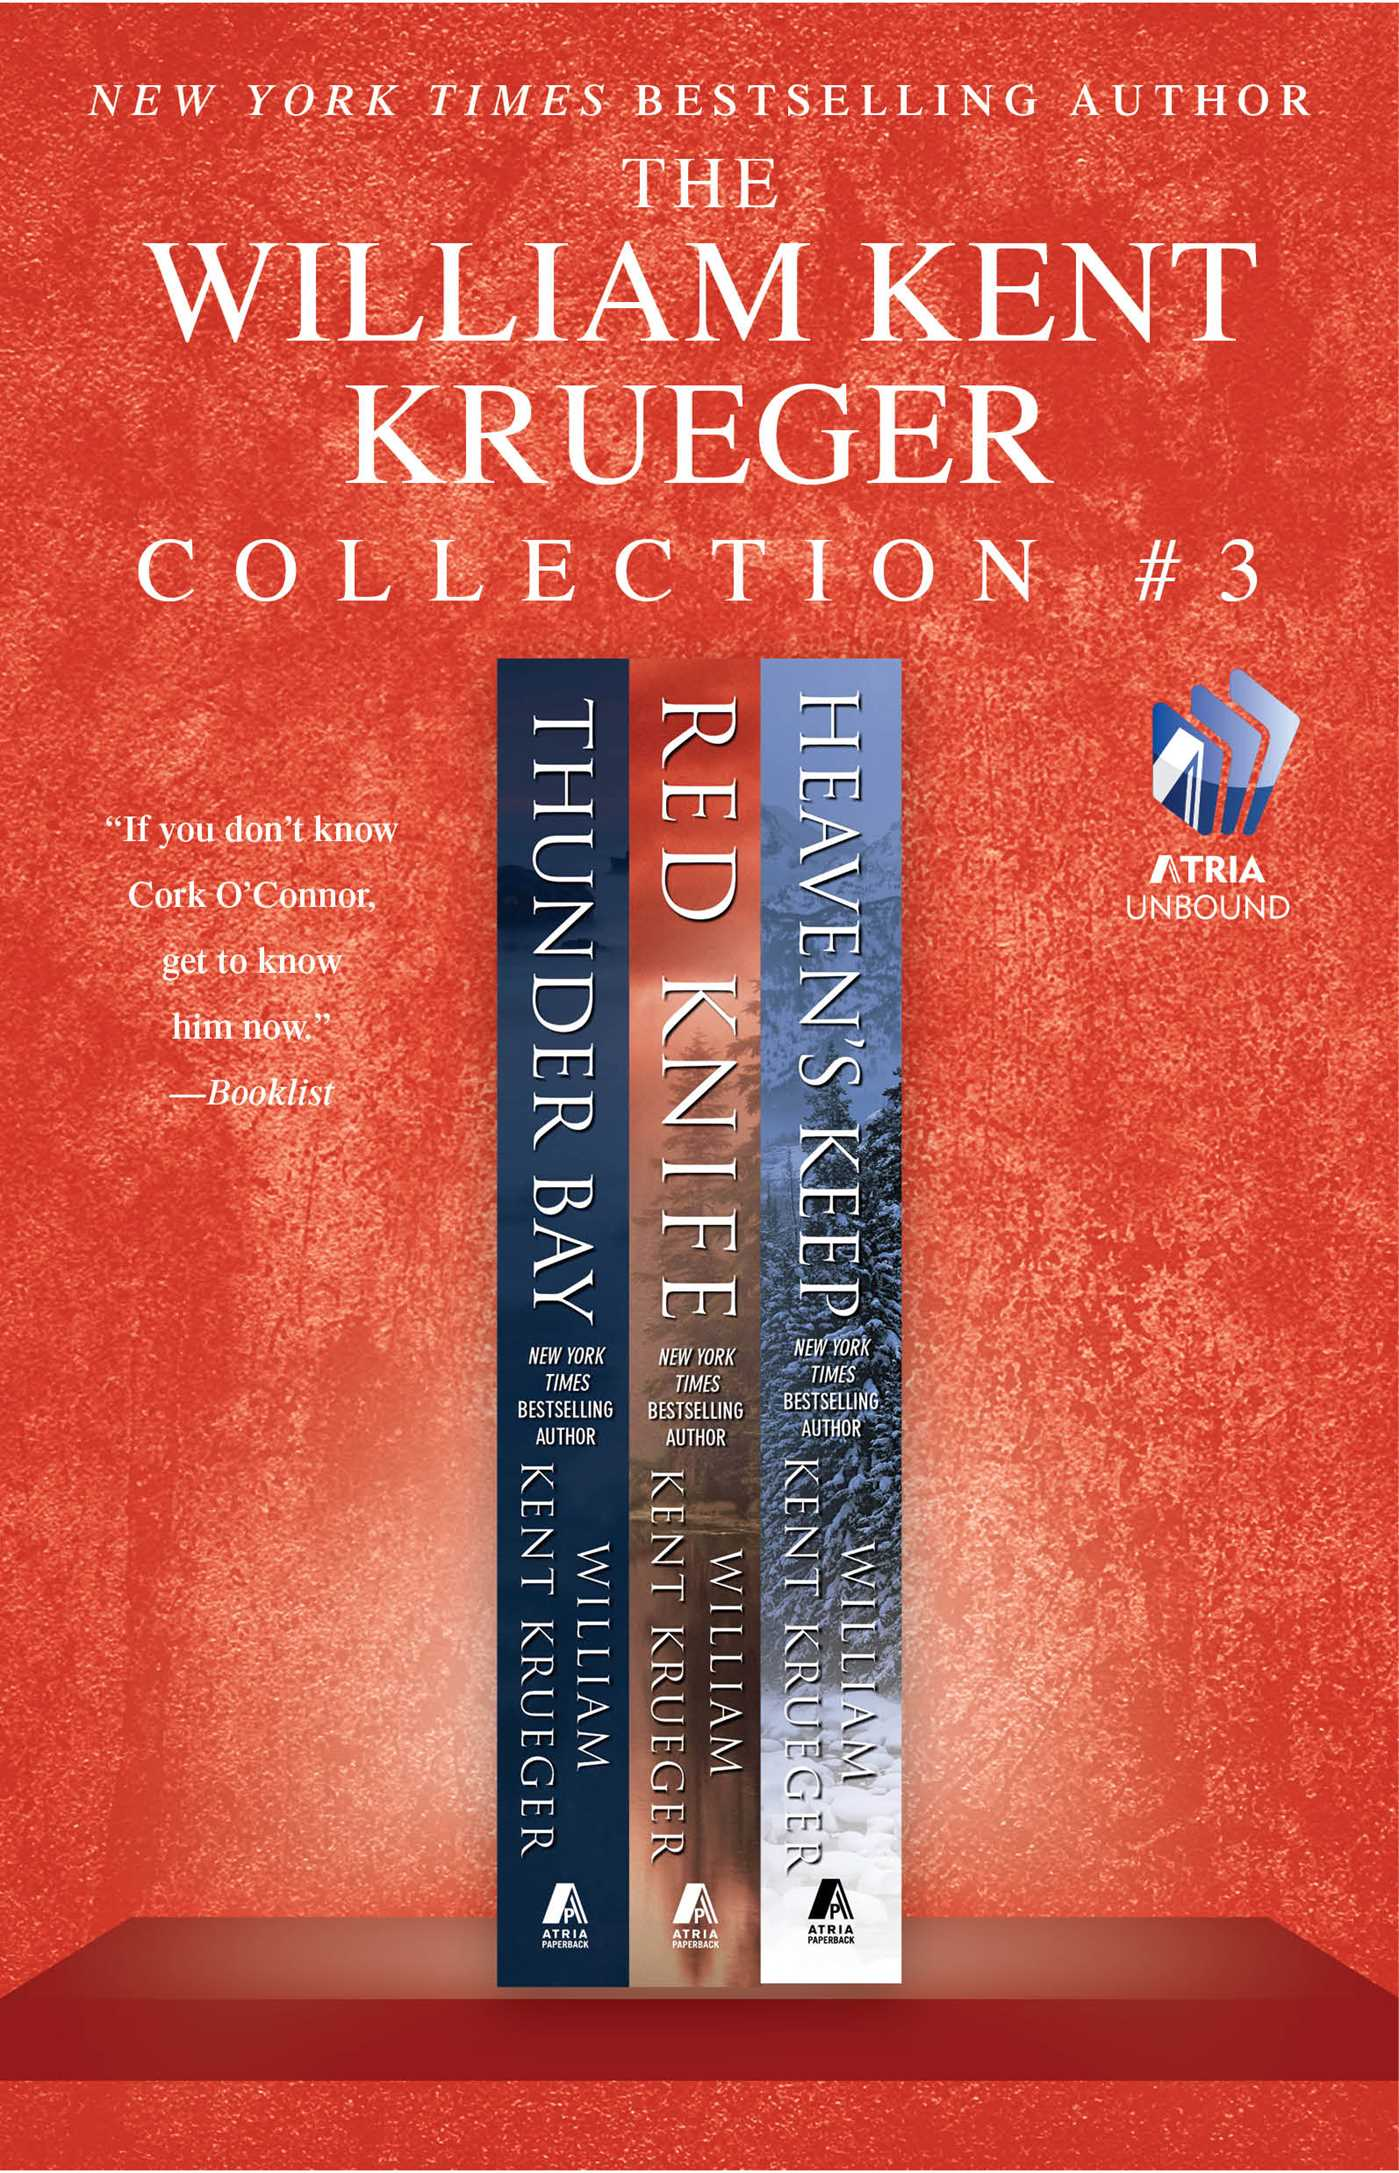 William-kent-krueger-collection-3-9781451691108_hr